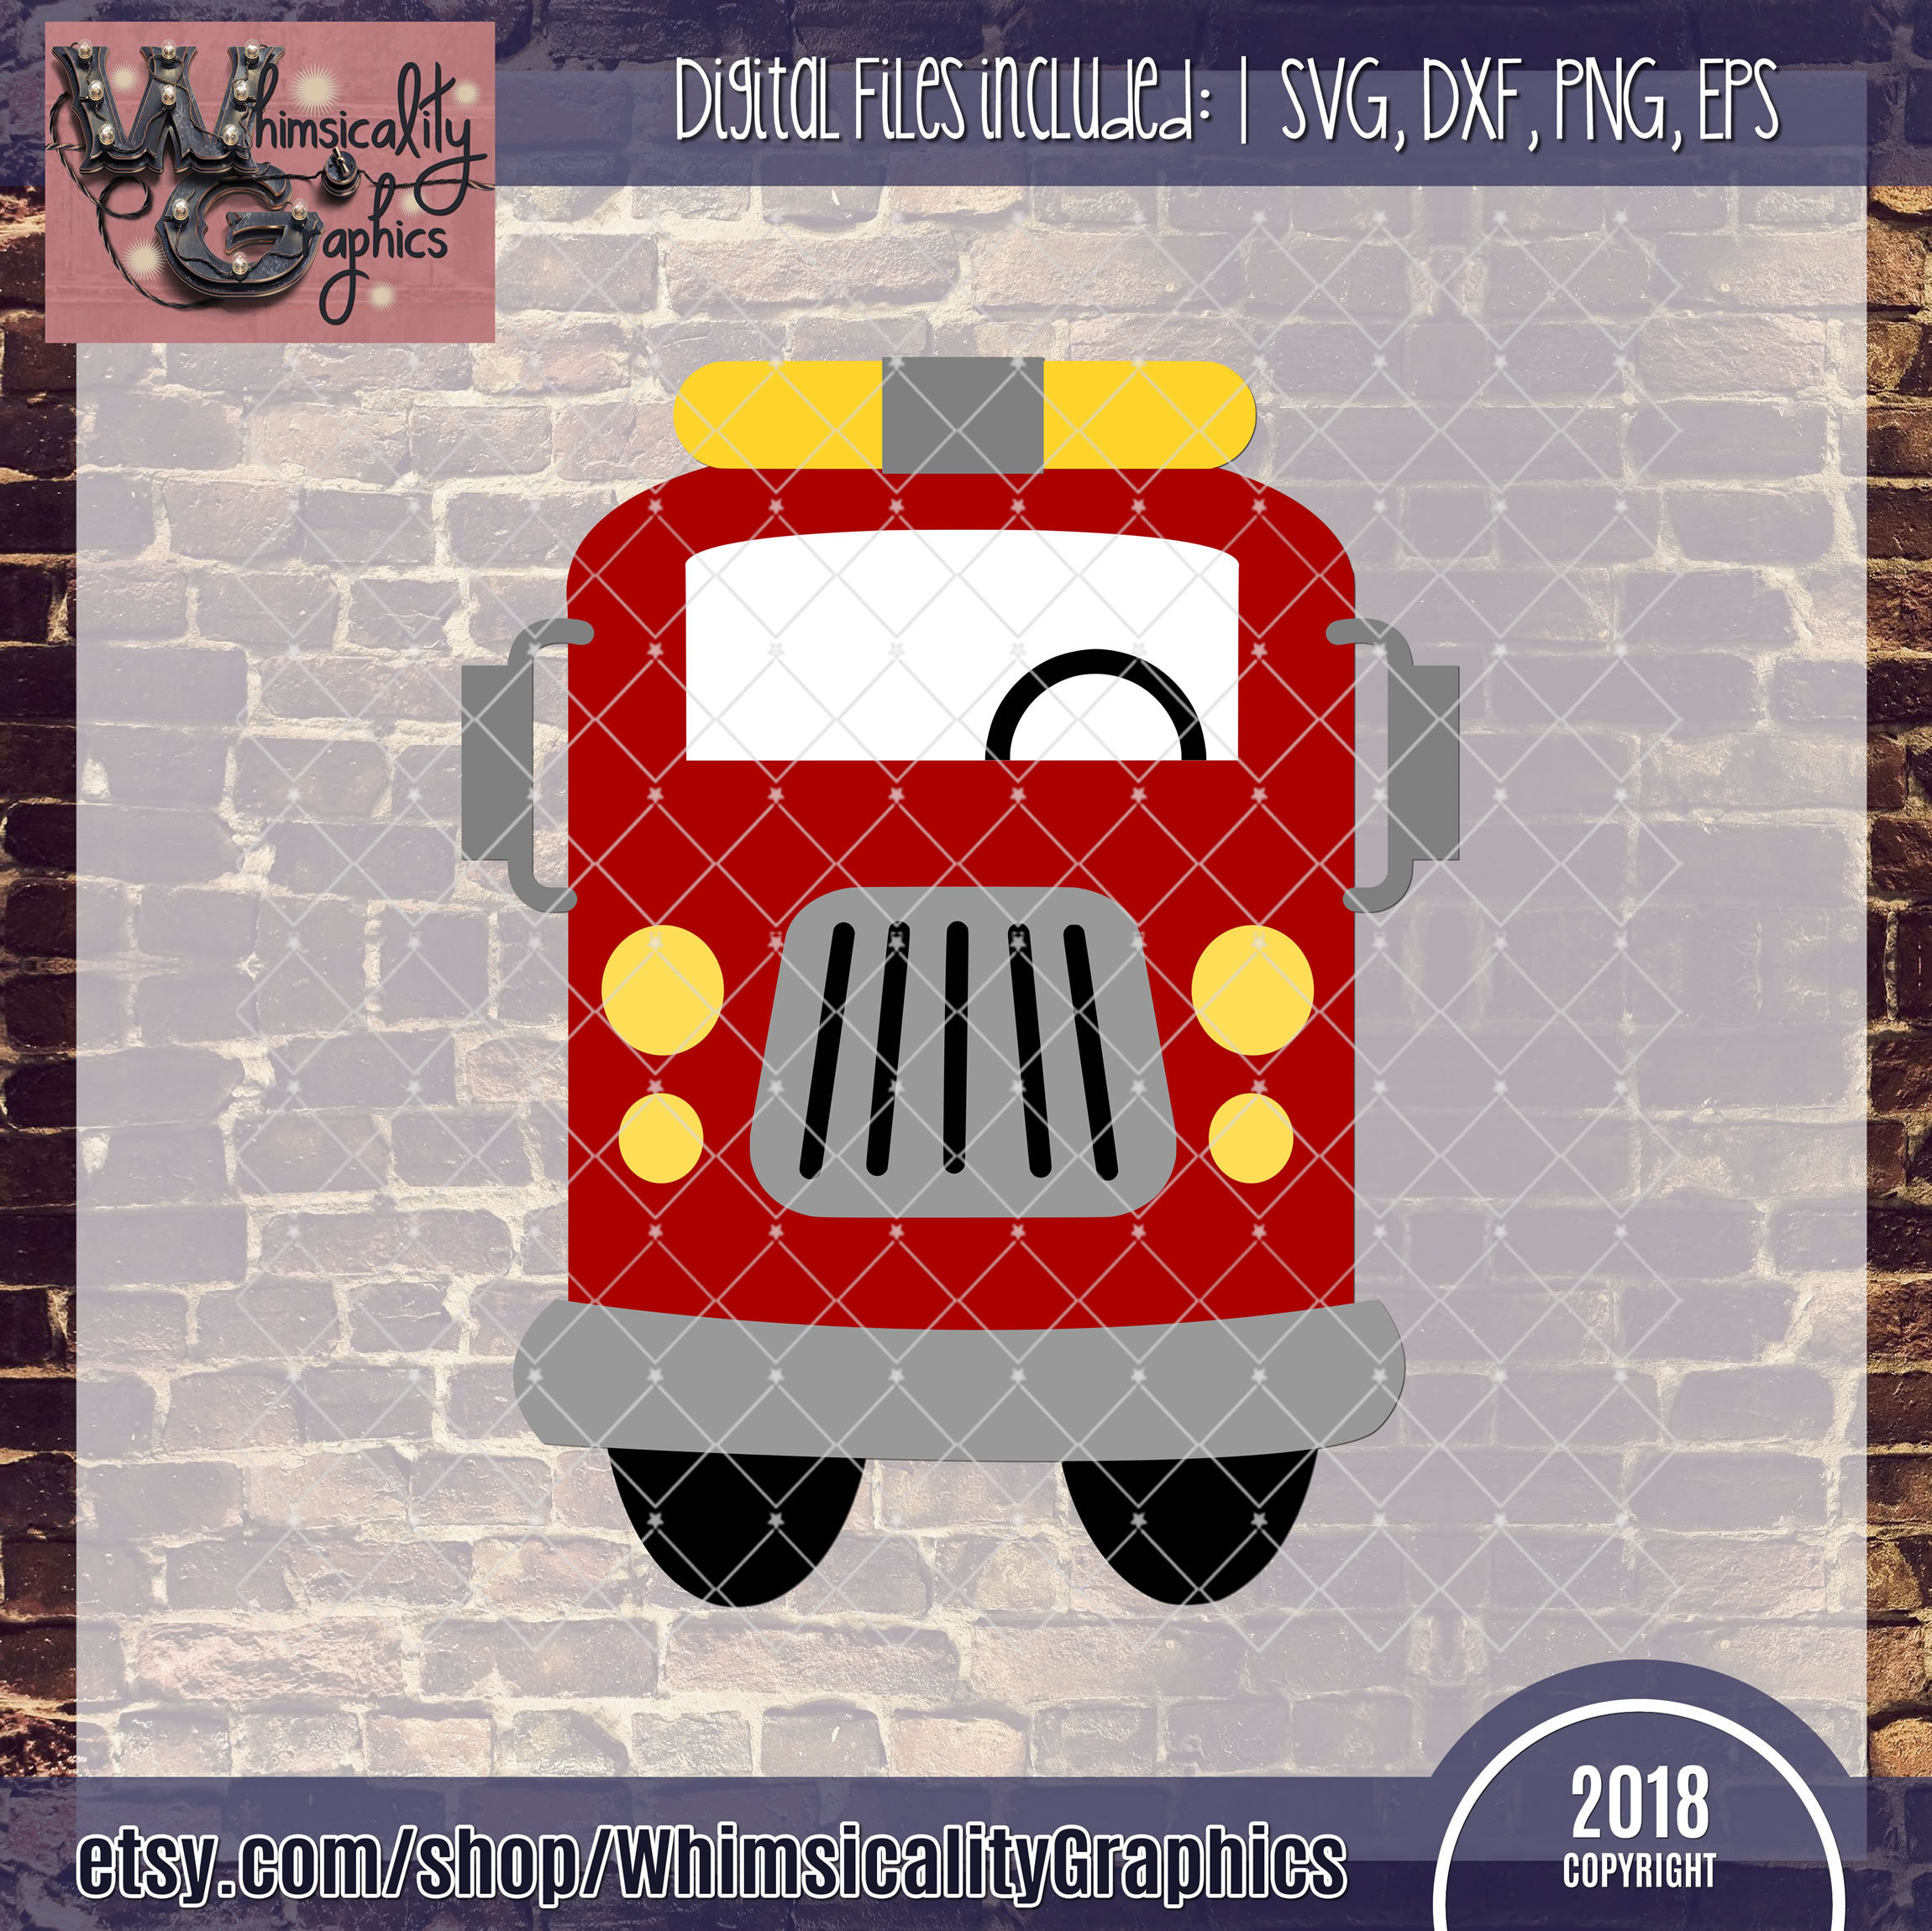 Whimsical Fire Truck Svg Dxf Png Eps